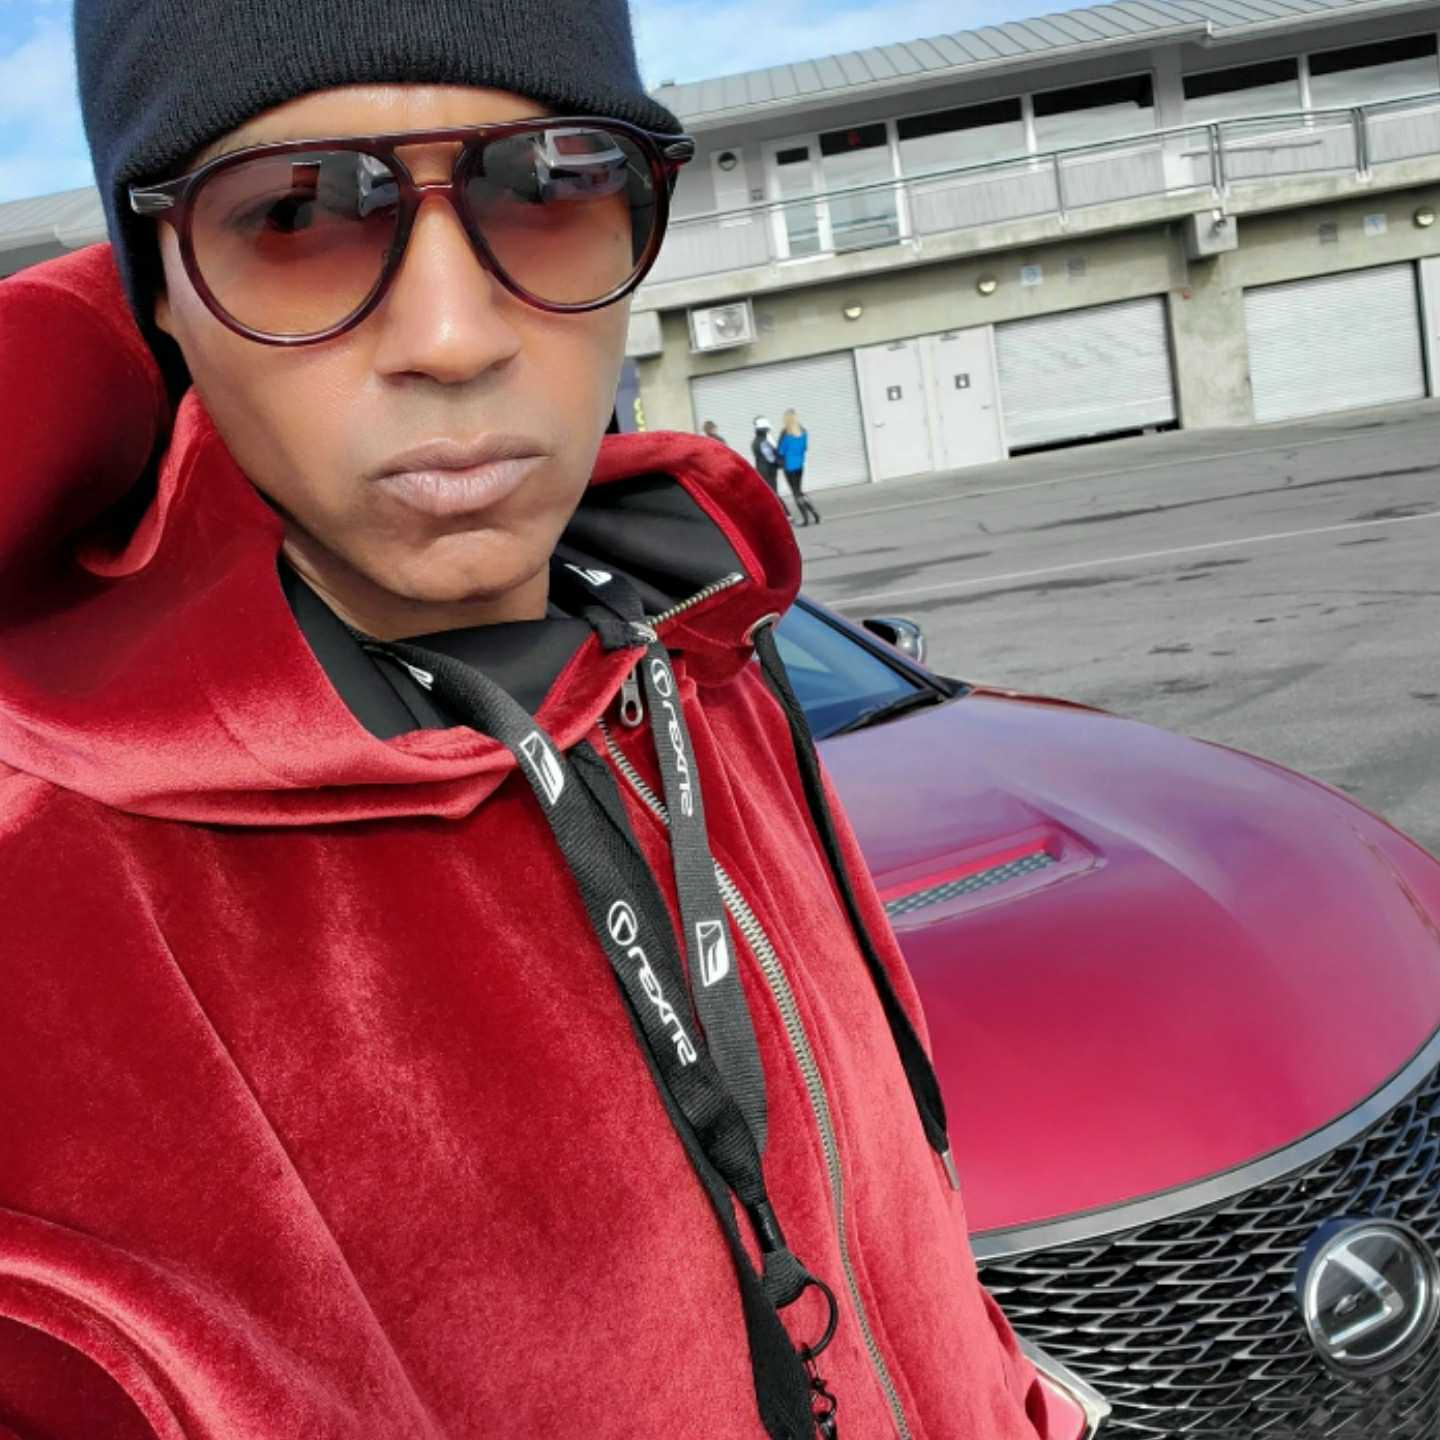 Ivy park, Vaughn Lowery, 360 MAGAZINE, 360, Lexus, lexus performance driving school, Toyota, japan